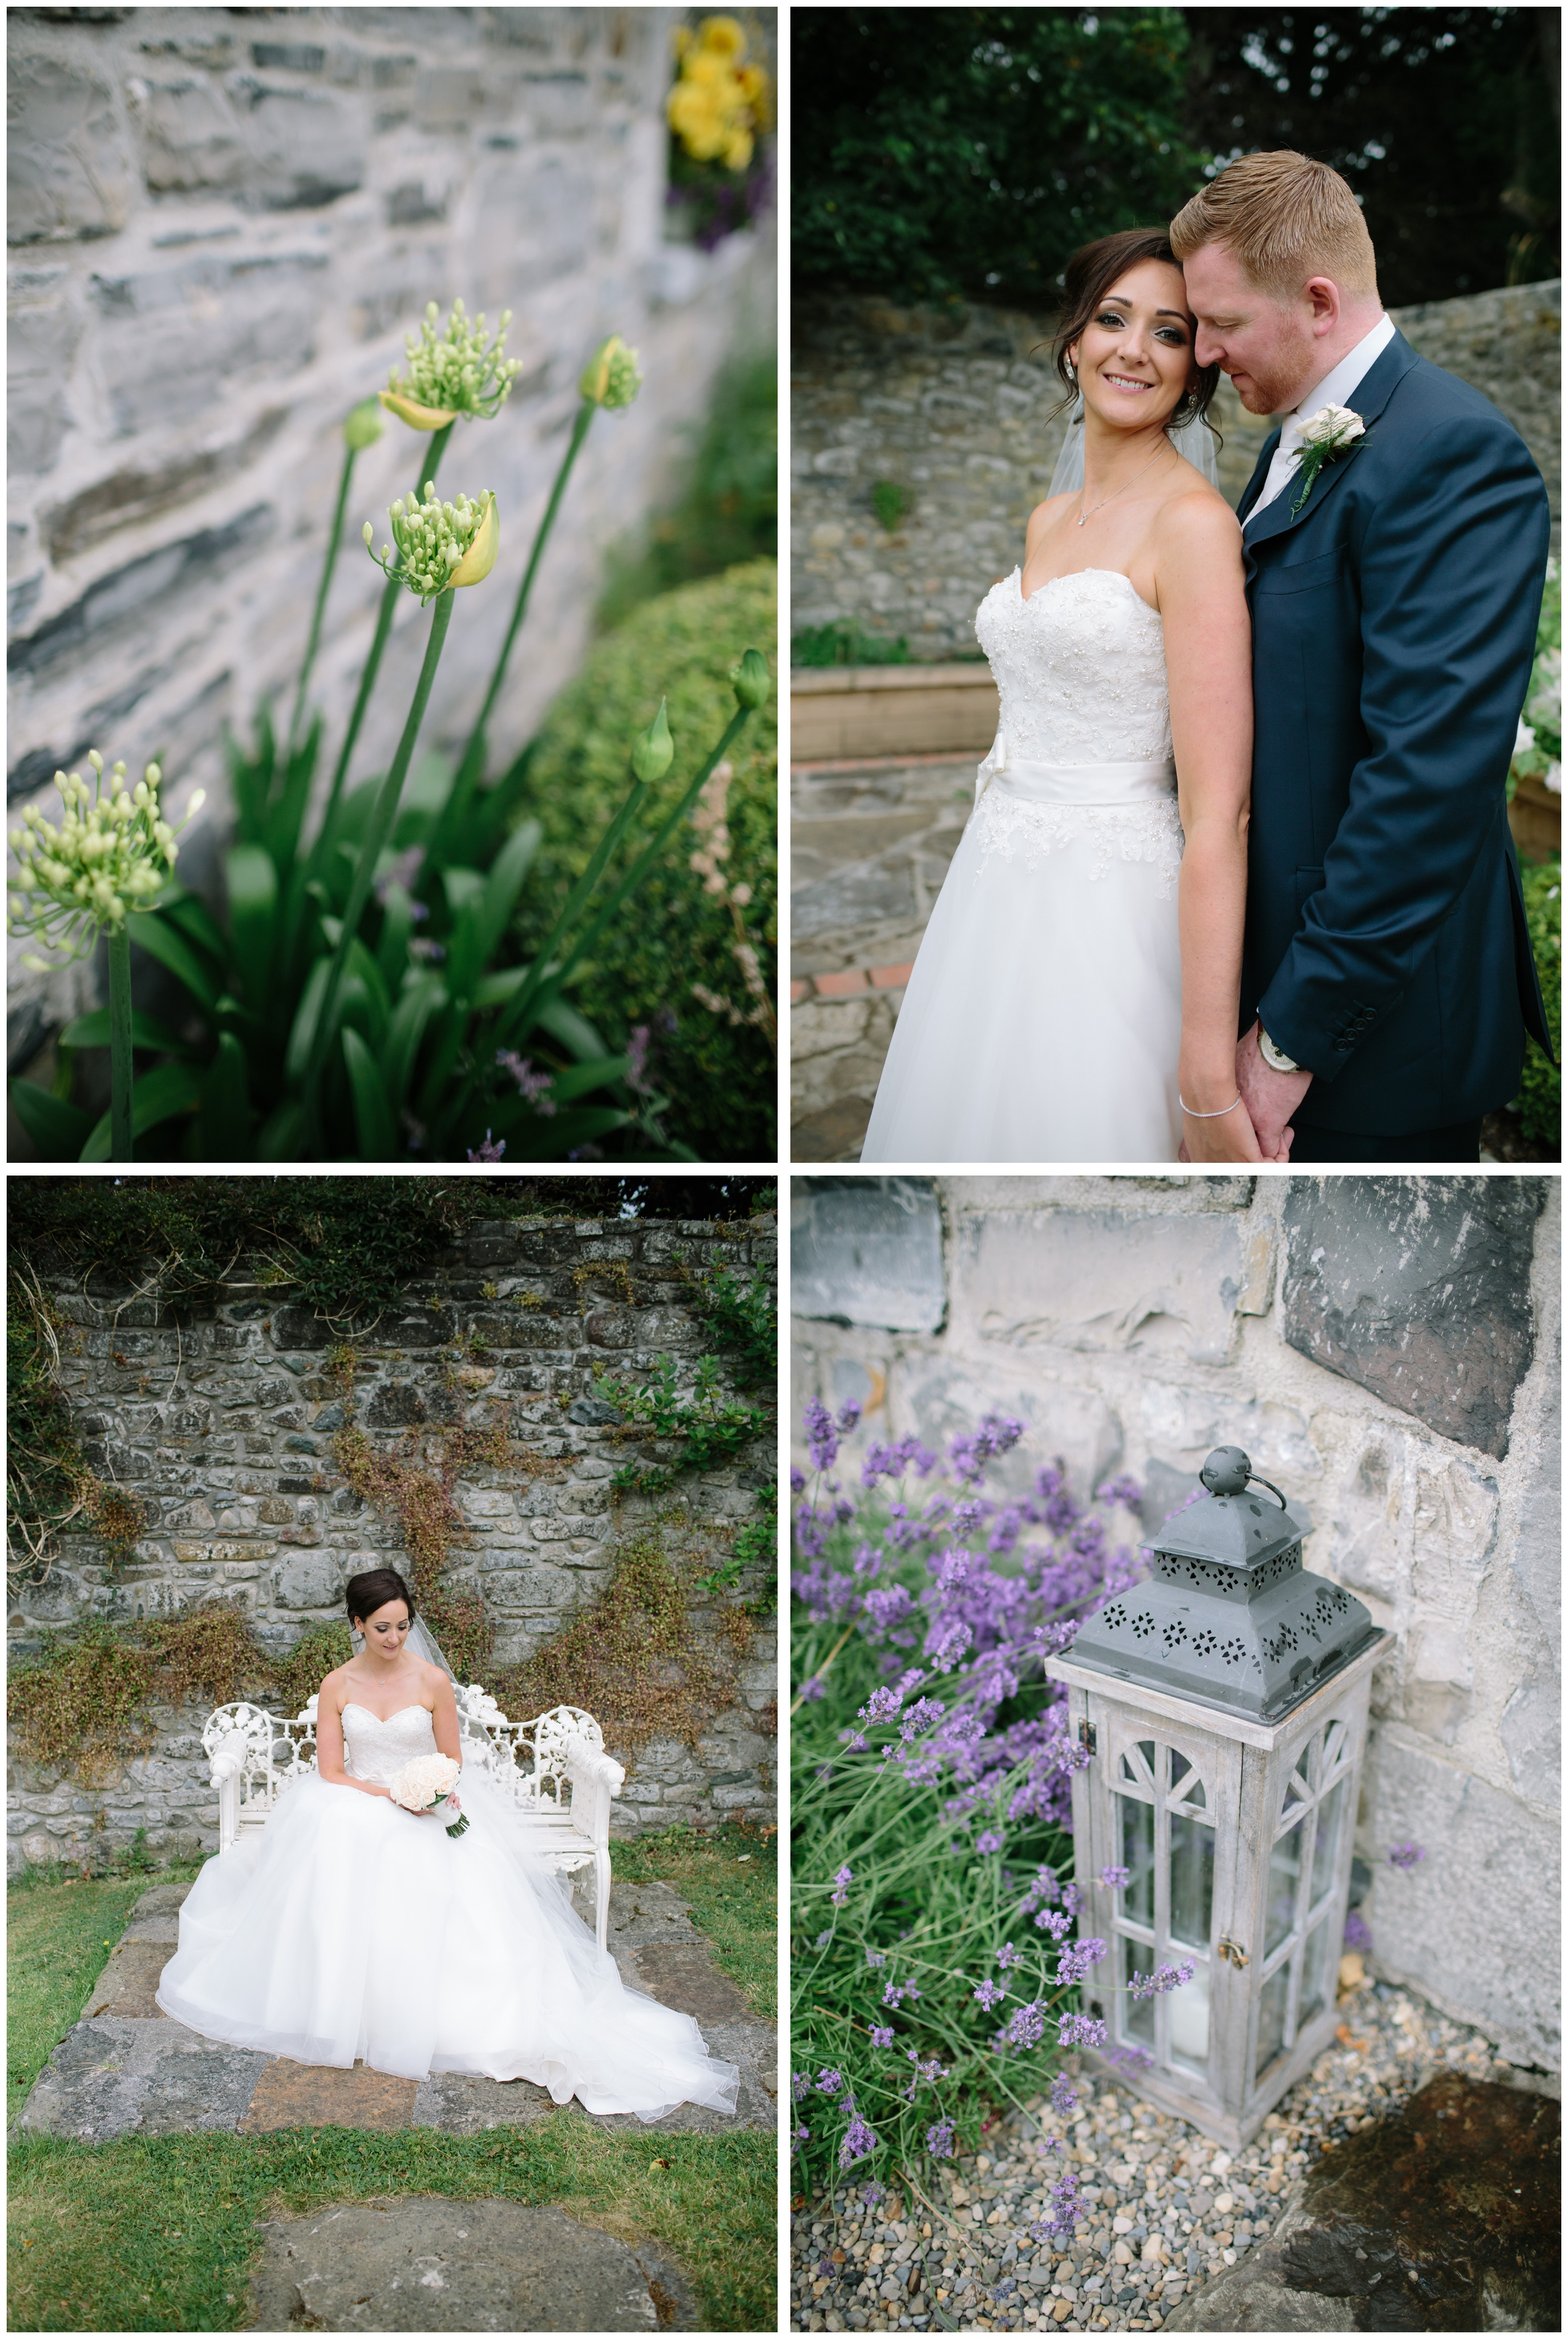 Ballymagarvey-Village-photographs-Destination-natural-wedding-photographer-Adare-Waterford_0274